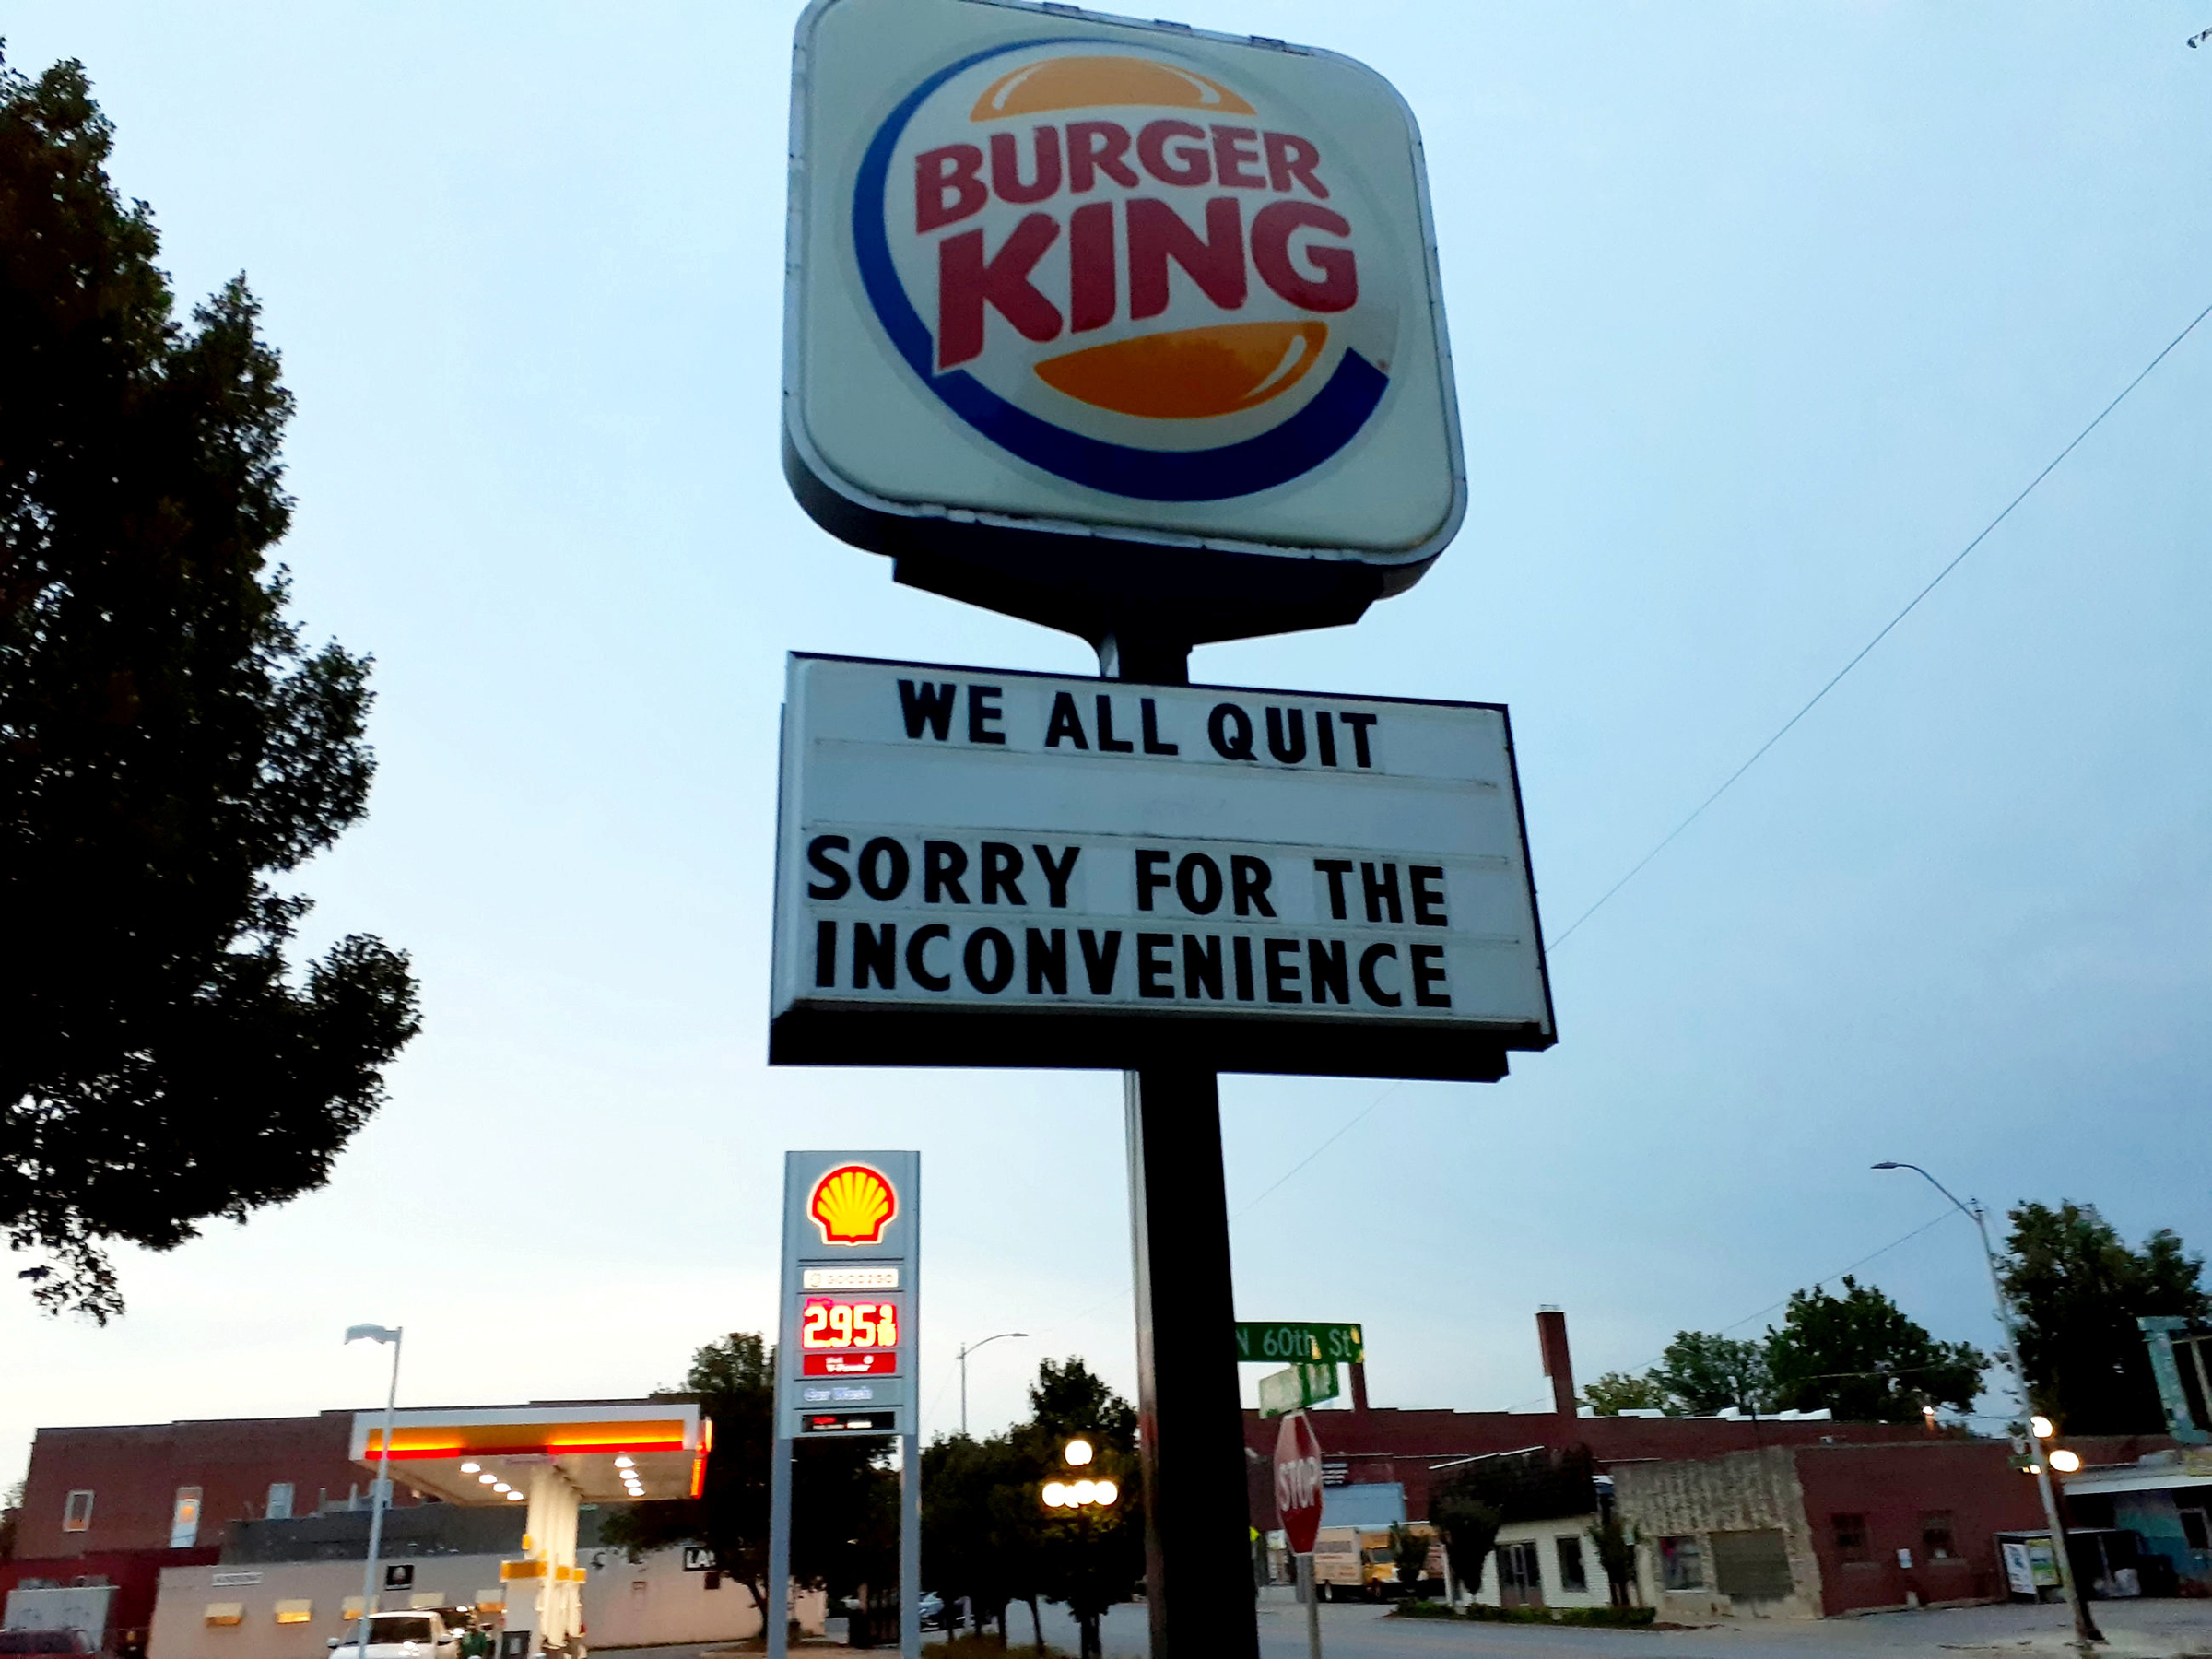 Staff at a Burger King in Lincoln, Nebraska announced their resignations on the sign outside the restaurant.